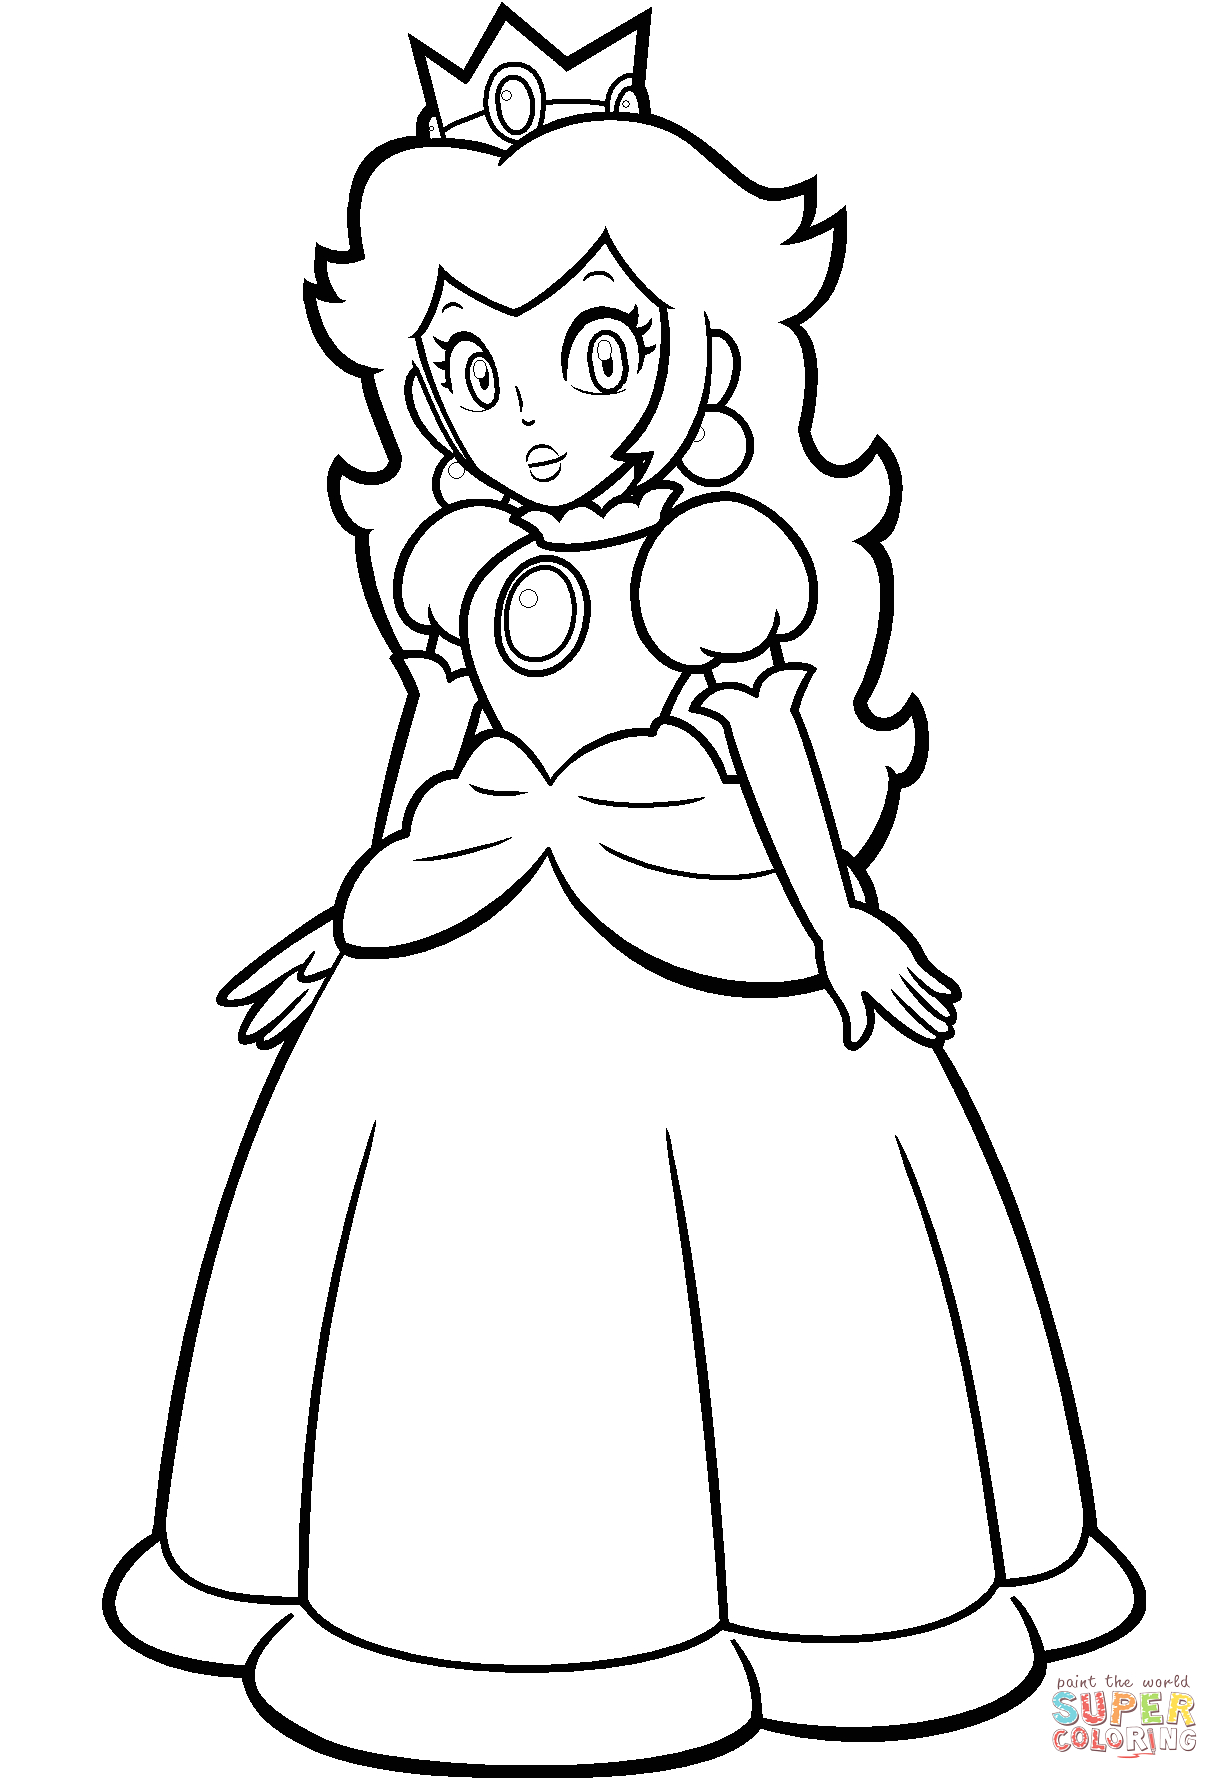 Mario Princess Peach Coloring Pages to Print Mario Bros Peach Coloring Pages Coloring Home